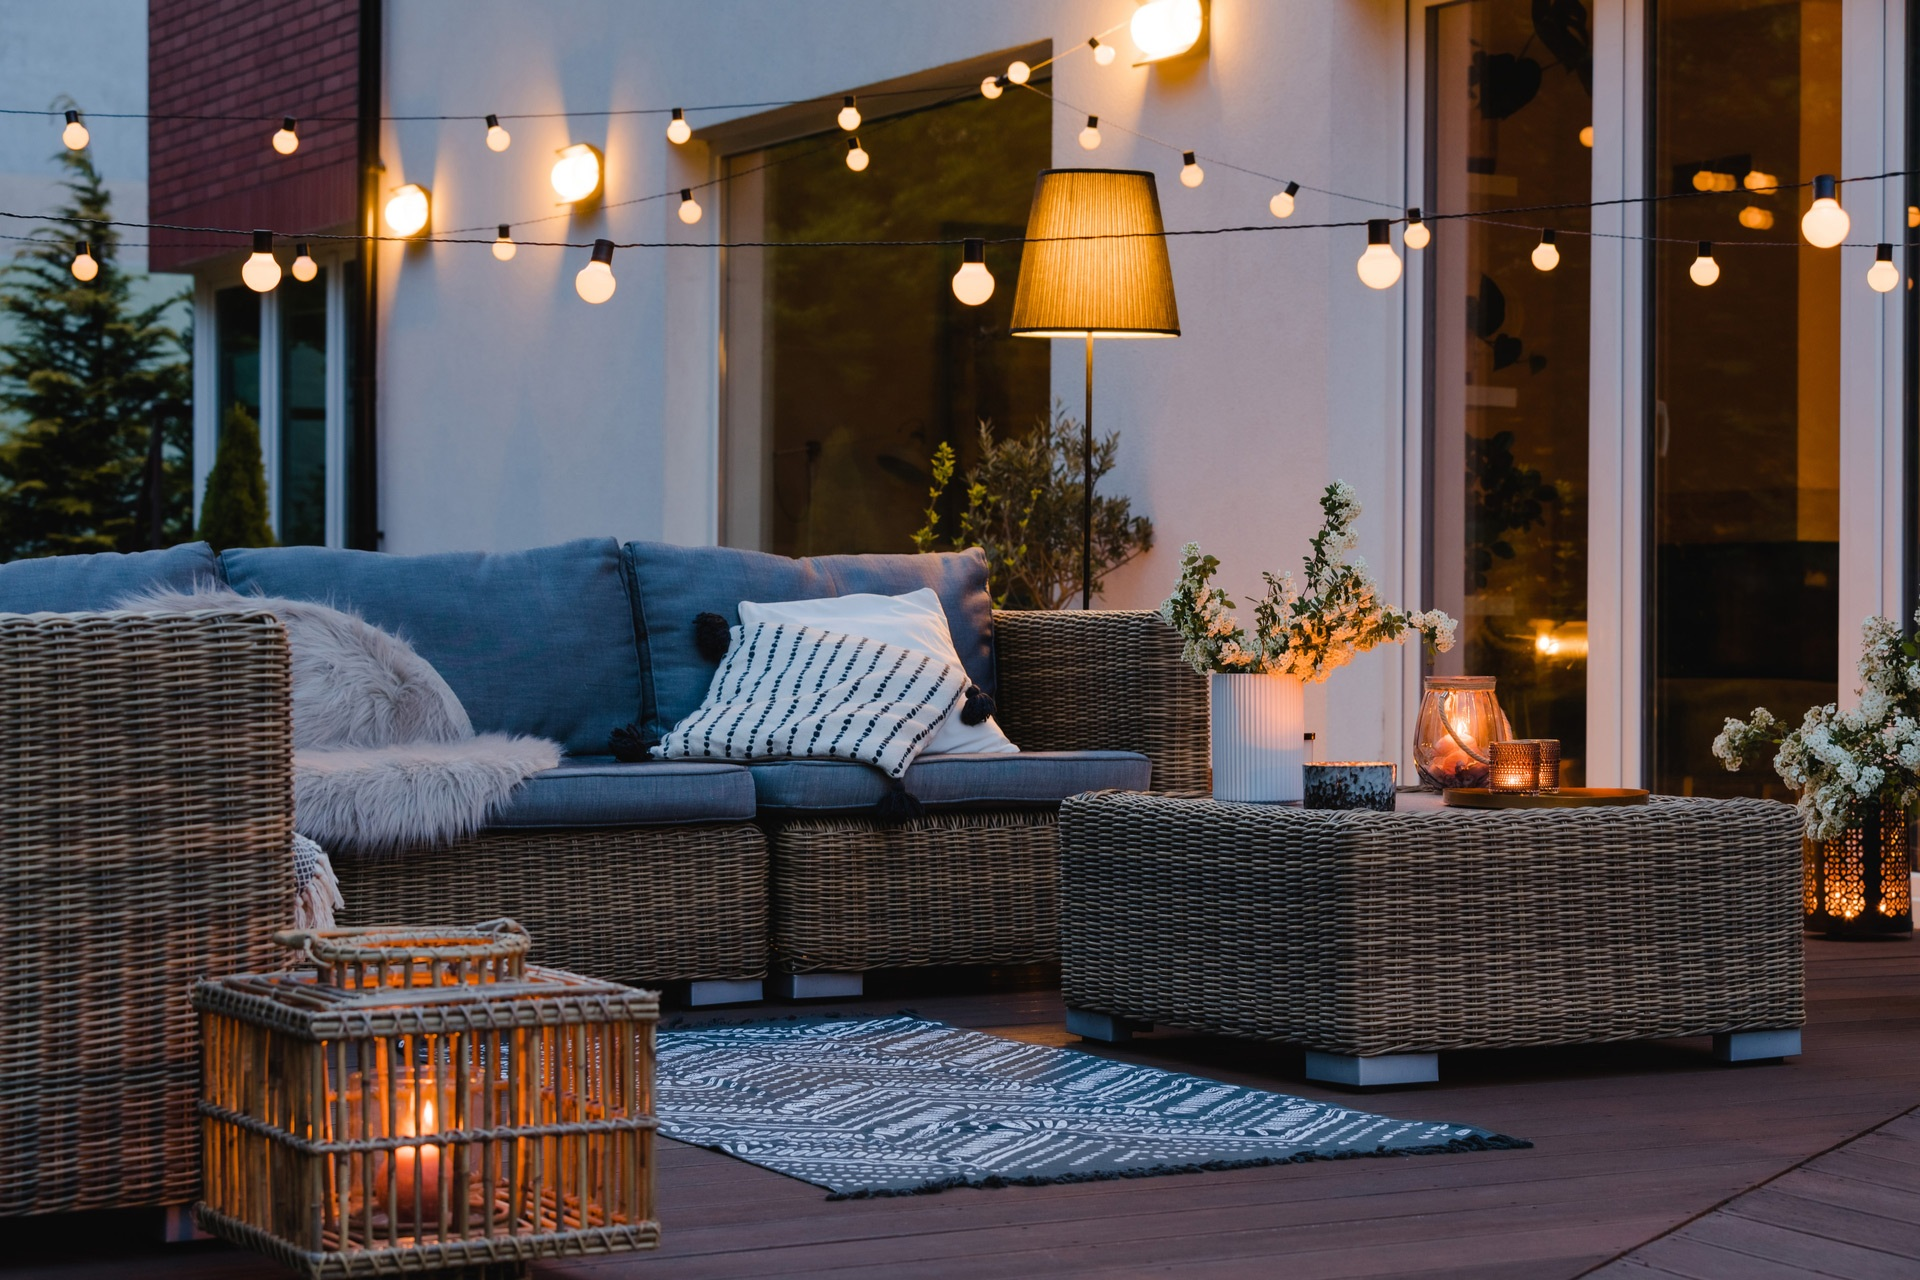 Header Outdoor Living Space With Furniture